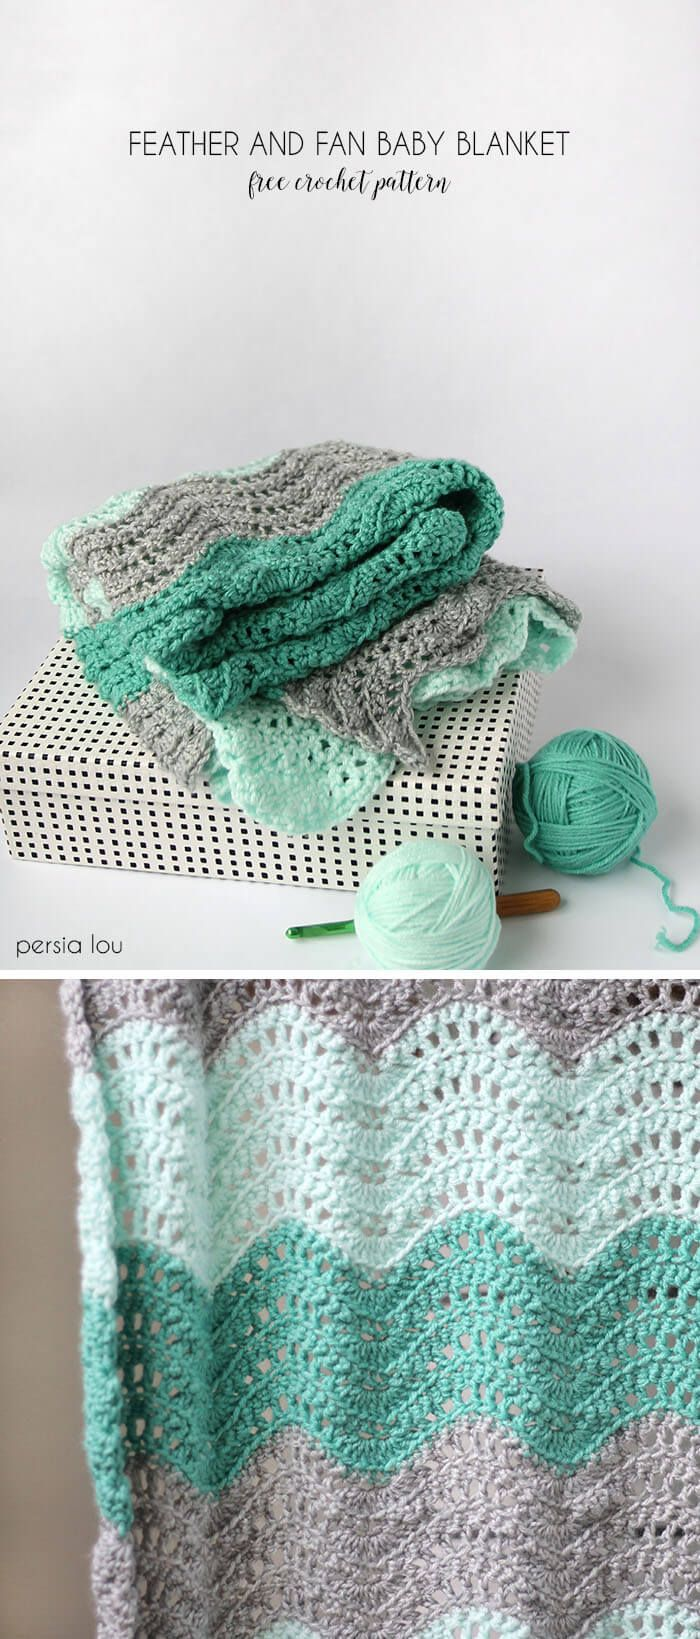 Crochet Feather and Fan Baby Blanket - Free Pattern | Manta, Colchas ...